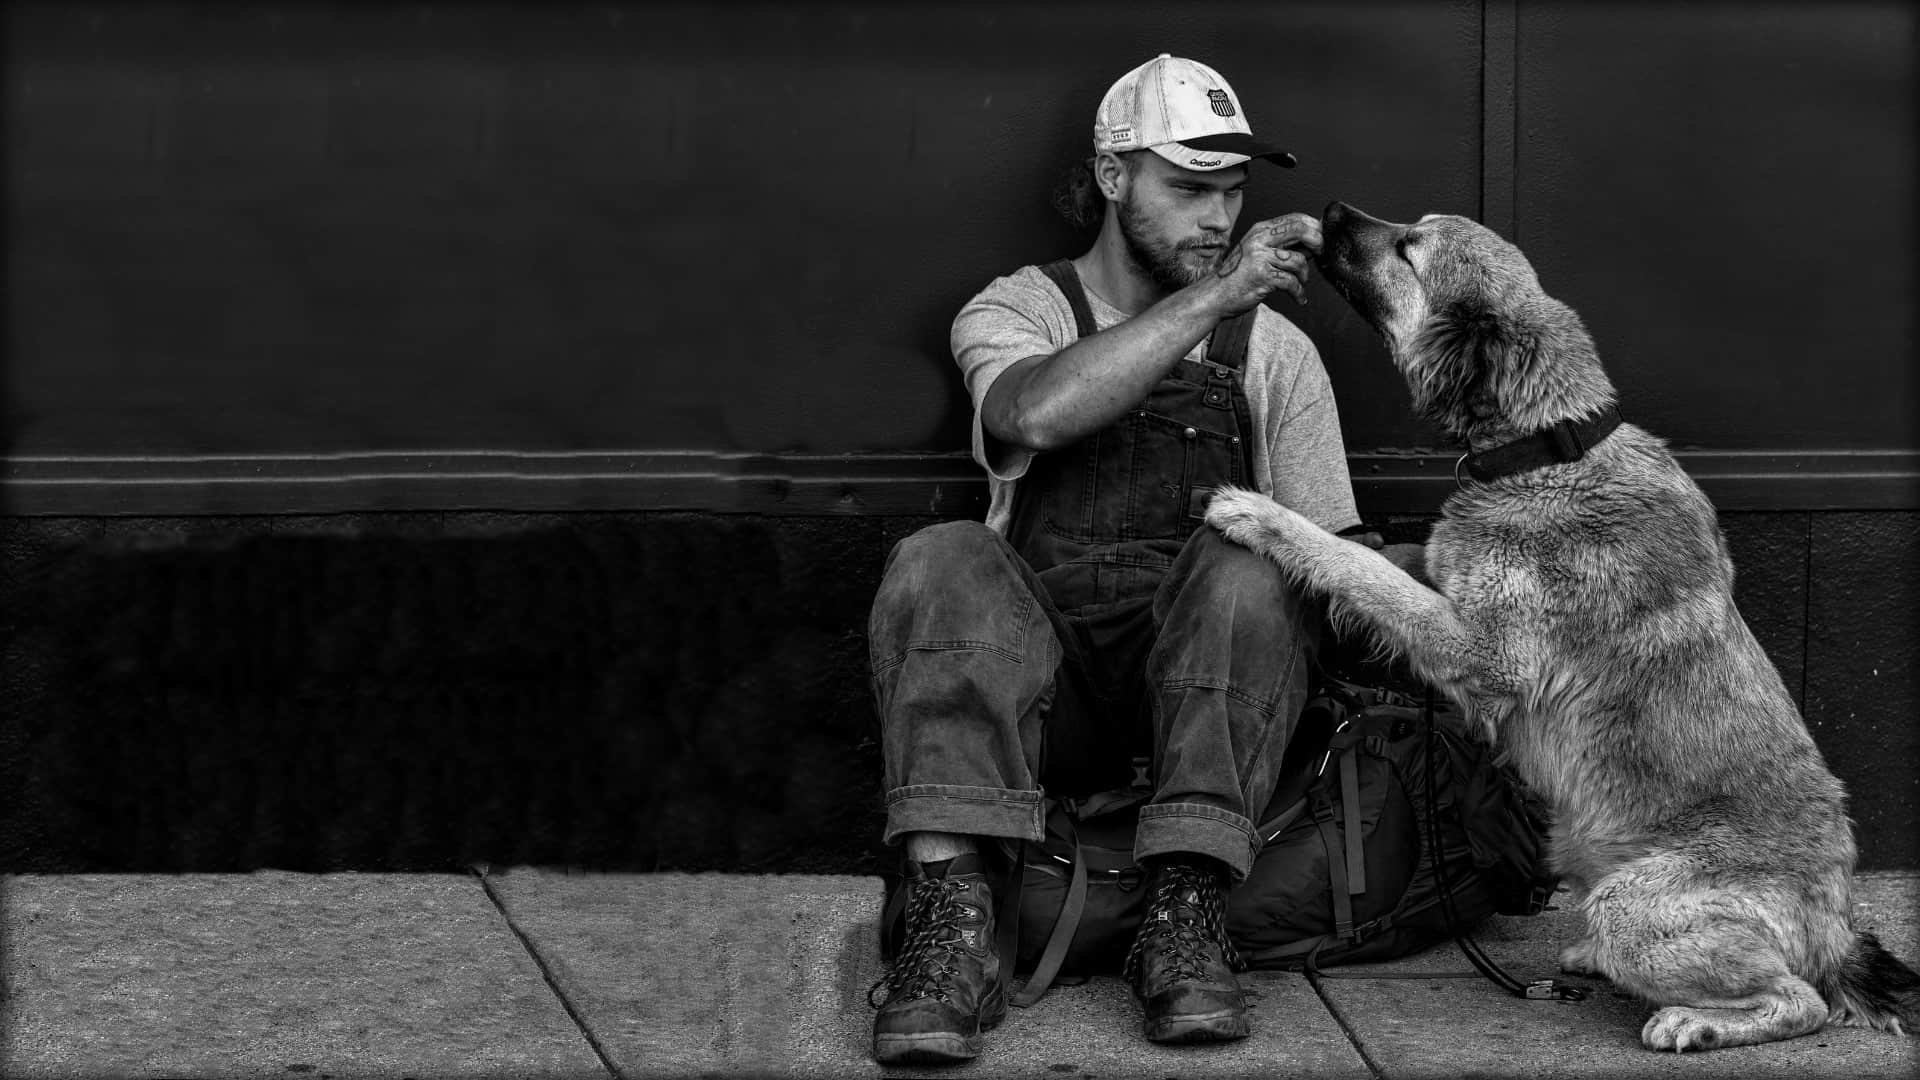 A person is shown sat, on the pavement, up against a wall with their kneed pulled in. A senior dog is next to the person, sitting up with its front paws on the person's knee. The person is in the process of feeding the dog a small treat.